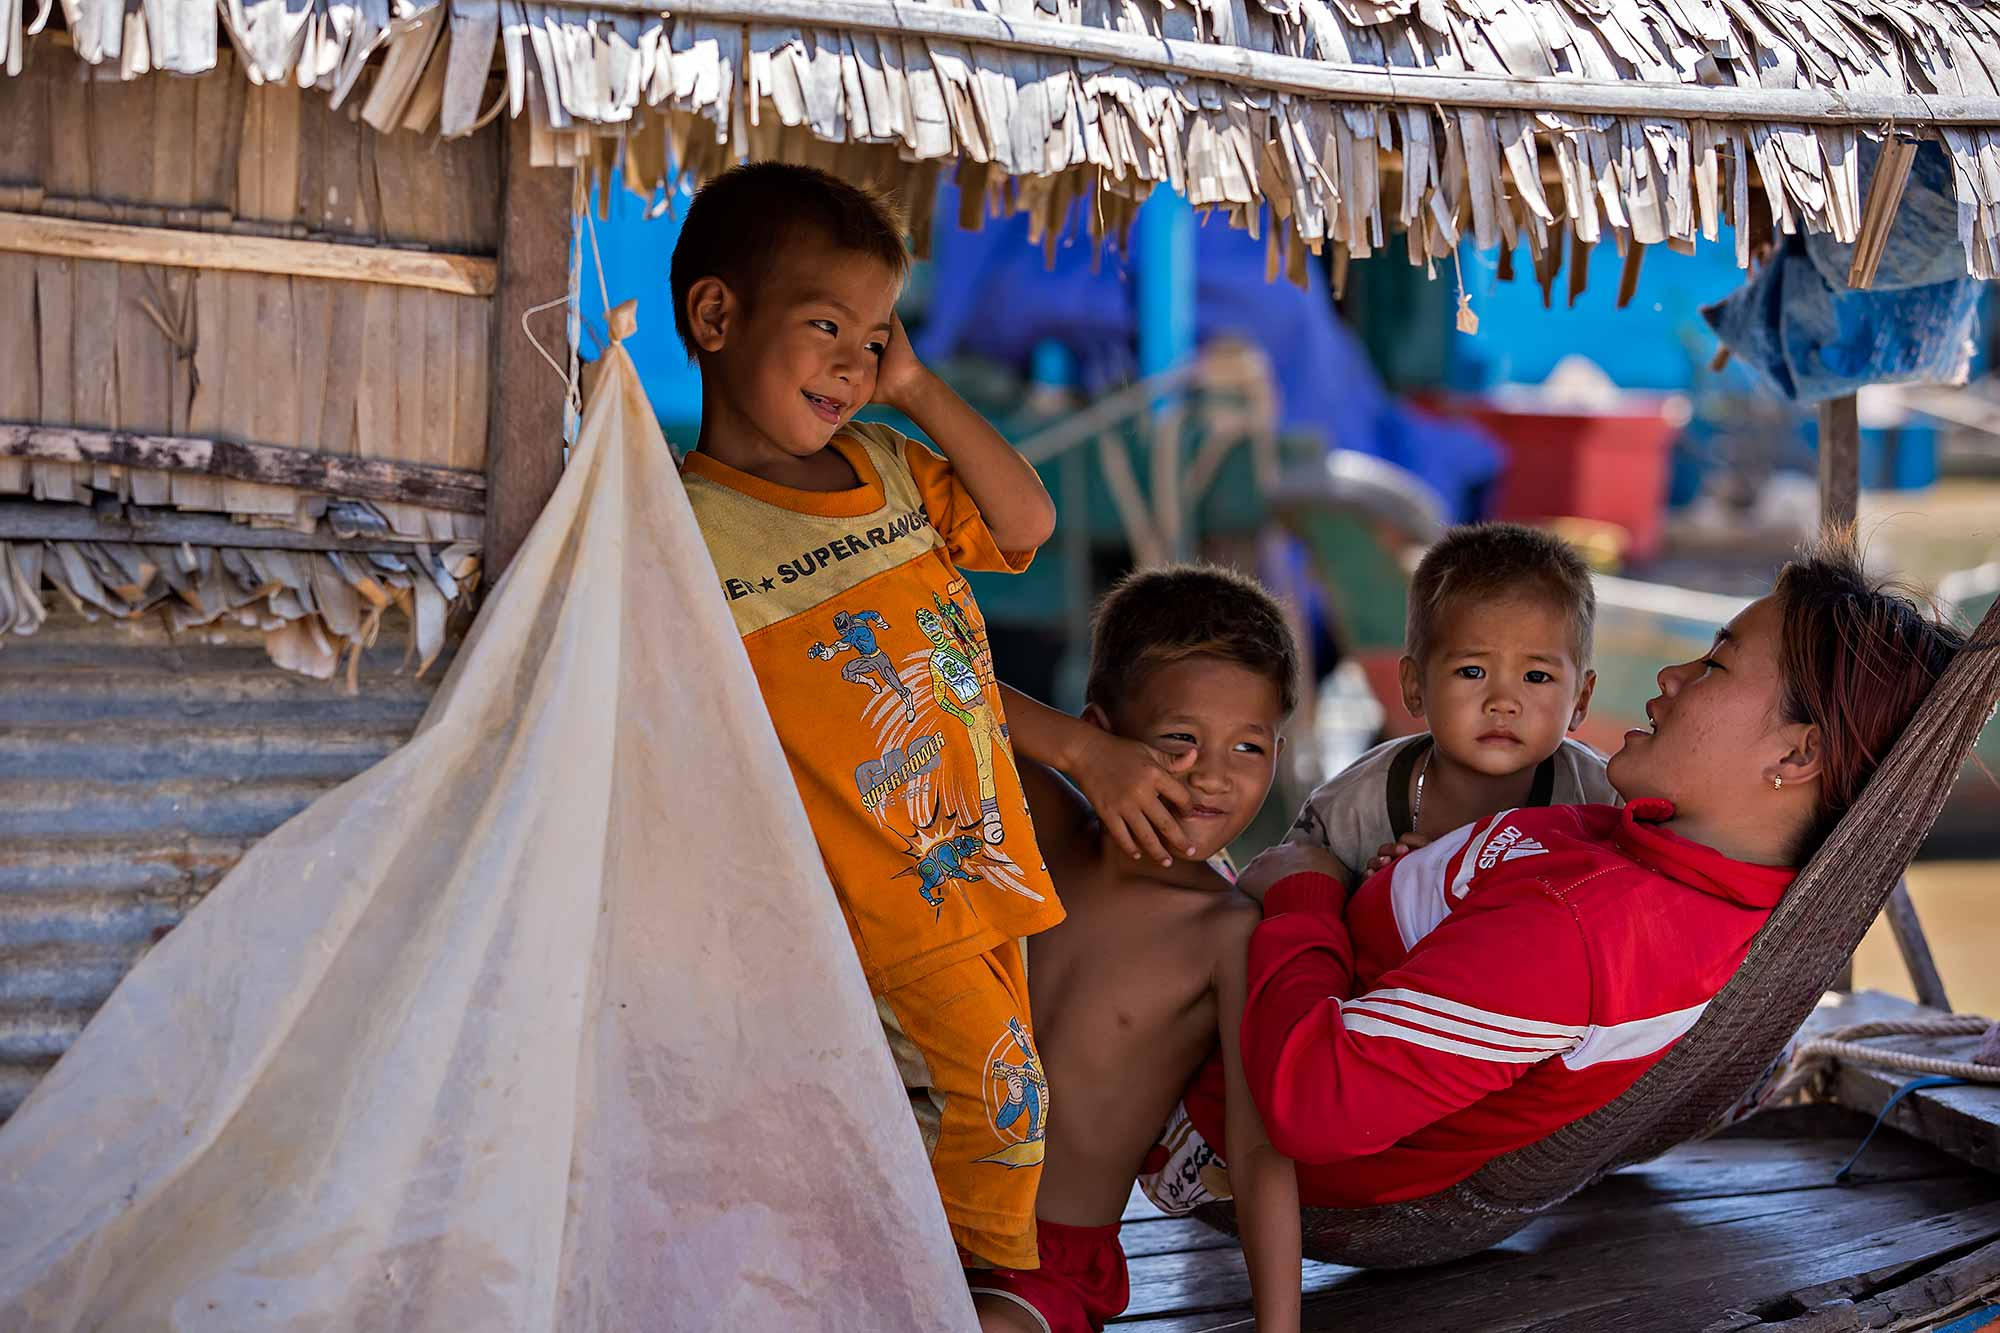 A family living in a floating village at Tonle Sap lake, Cambodia. © Ulli Maier & Nisa Maier